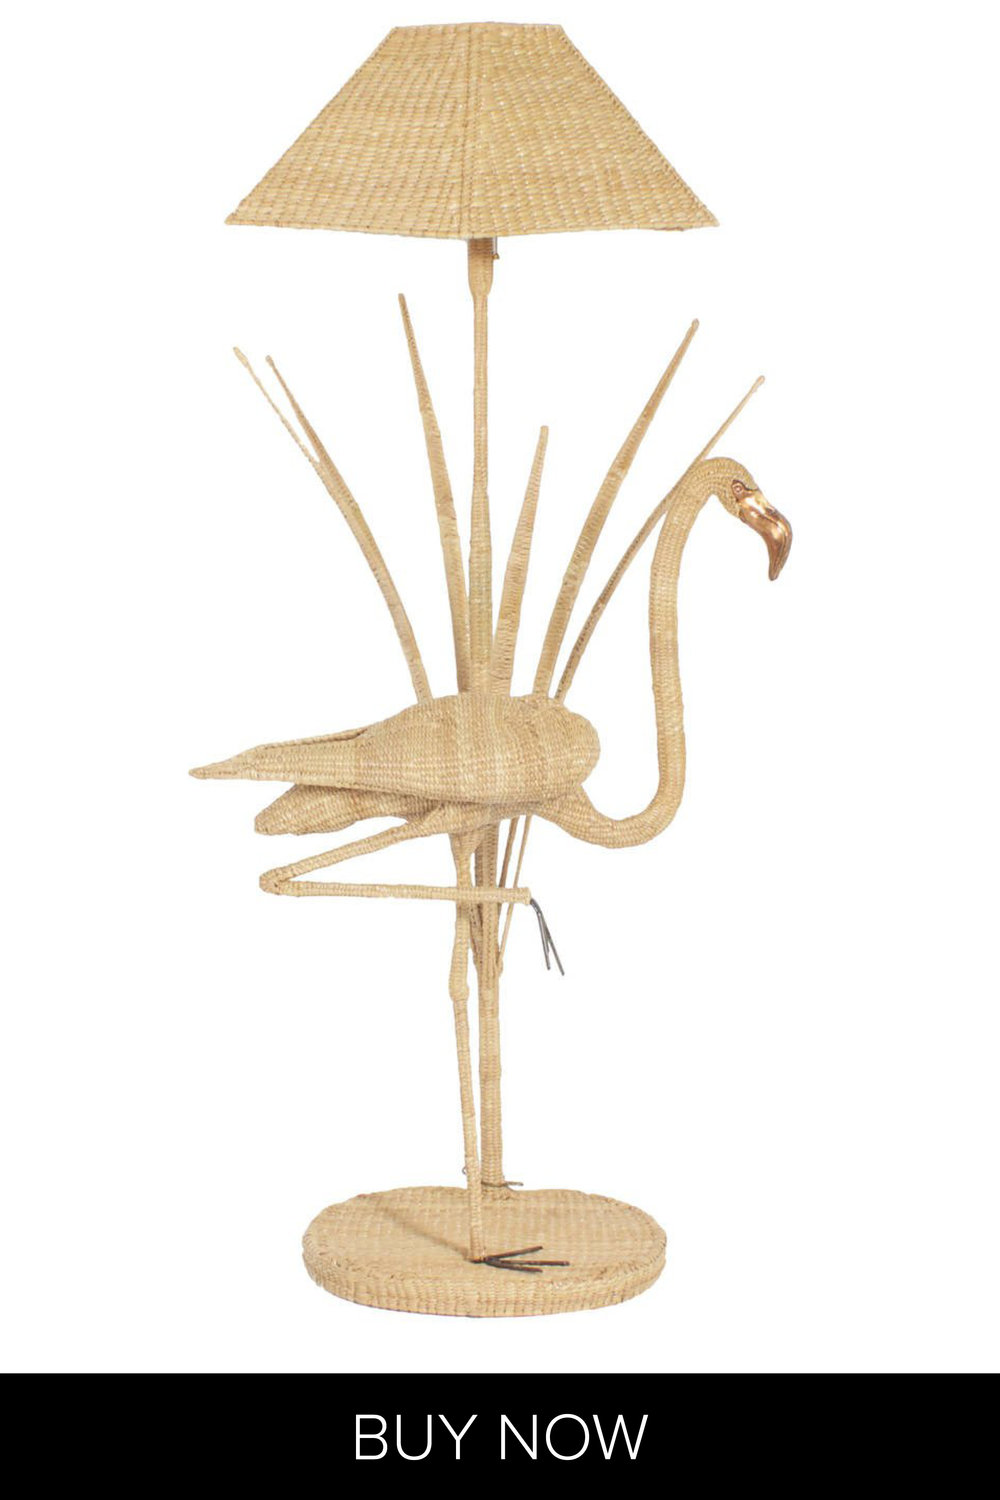 Copy of Mario Torres Flamingo Floor Lamp